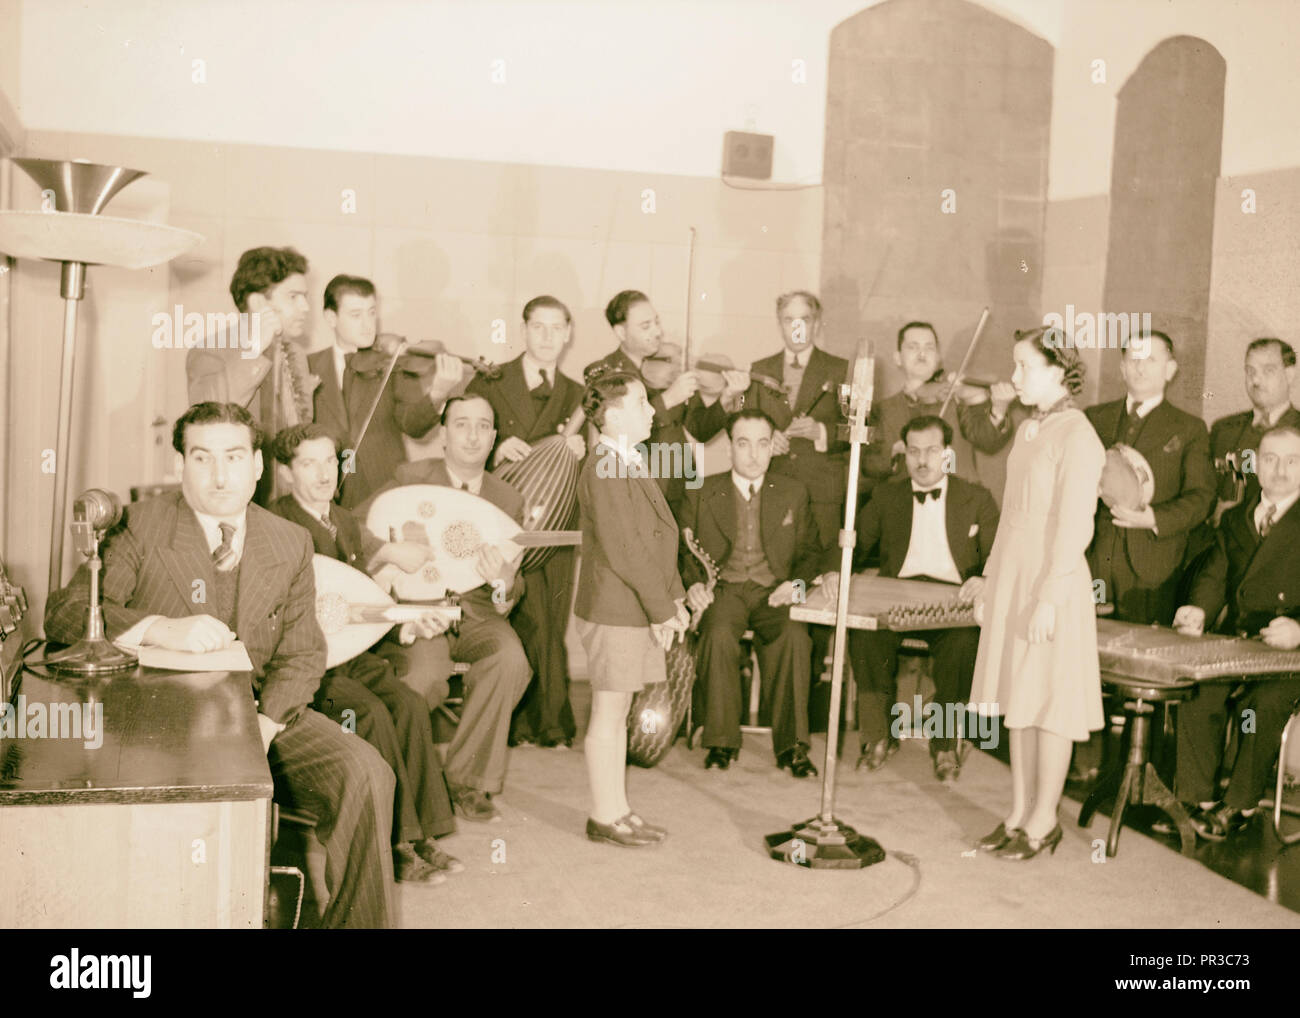 Broadcasting. Palestine Broadcasting Service. Arab musicians with girl & boy soloists at microphone. 1940 - Stock Image